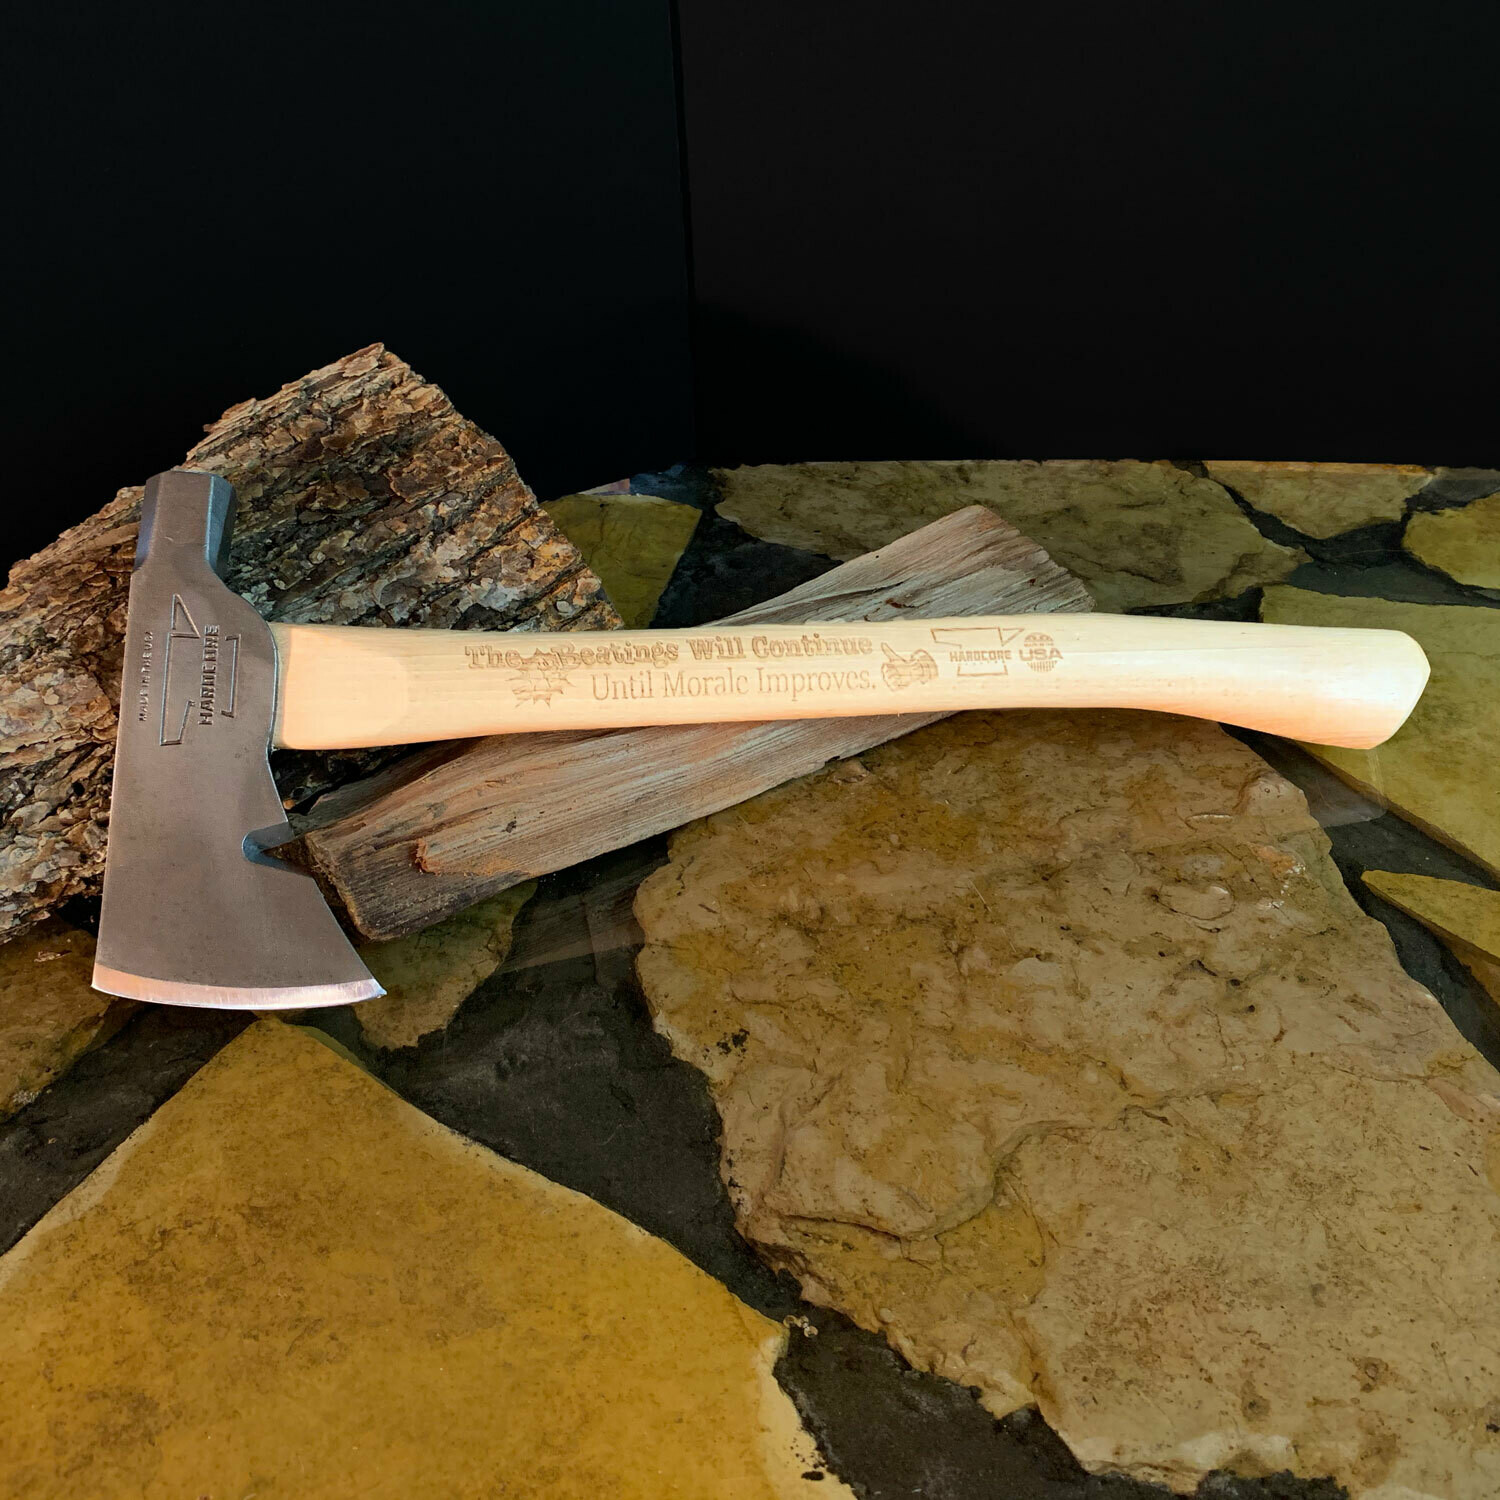 Super Naturalist Hatchet - The Beatings Will Continue...